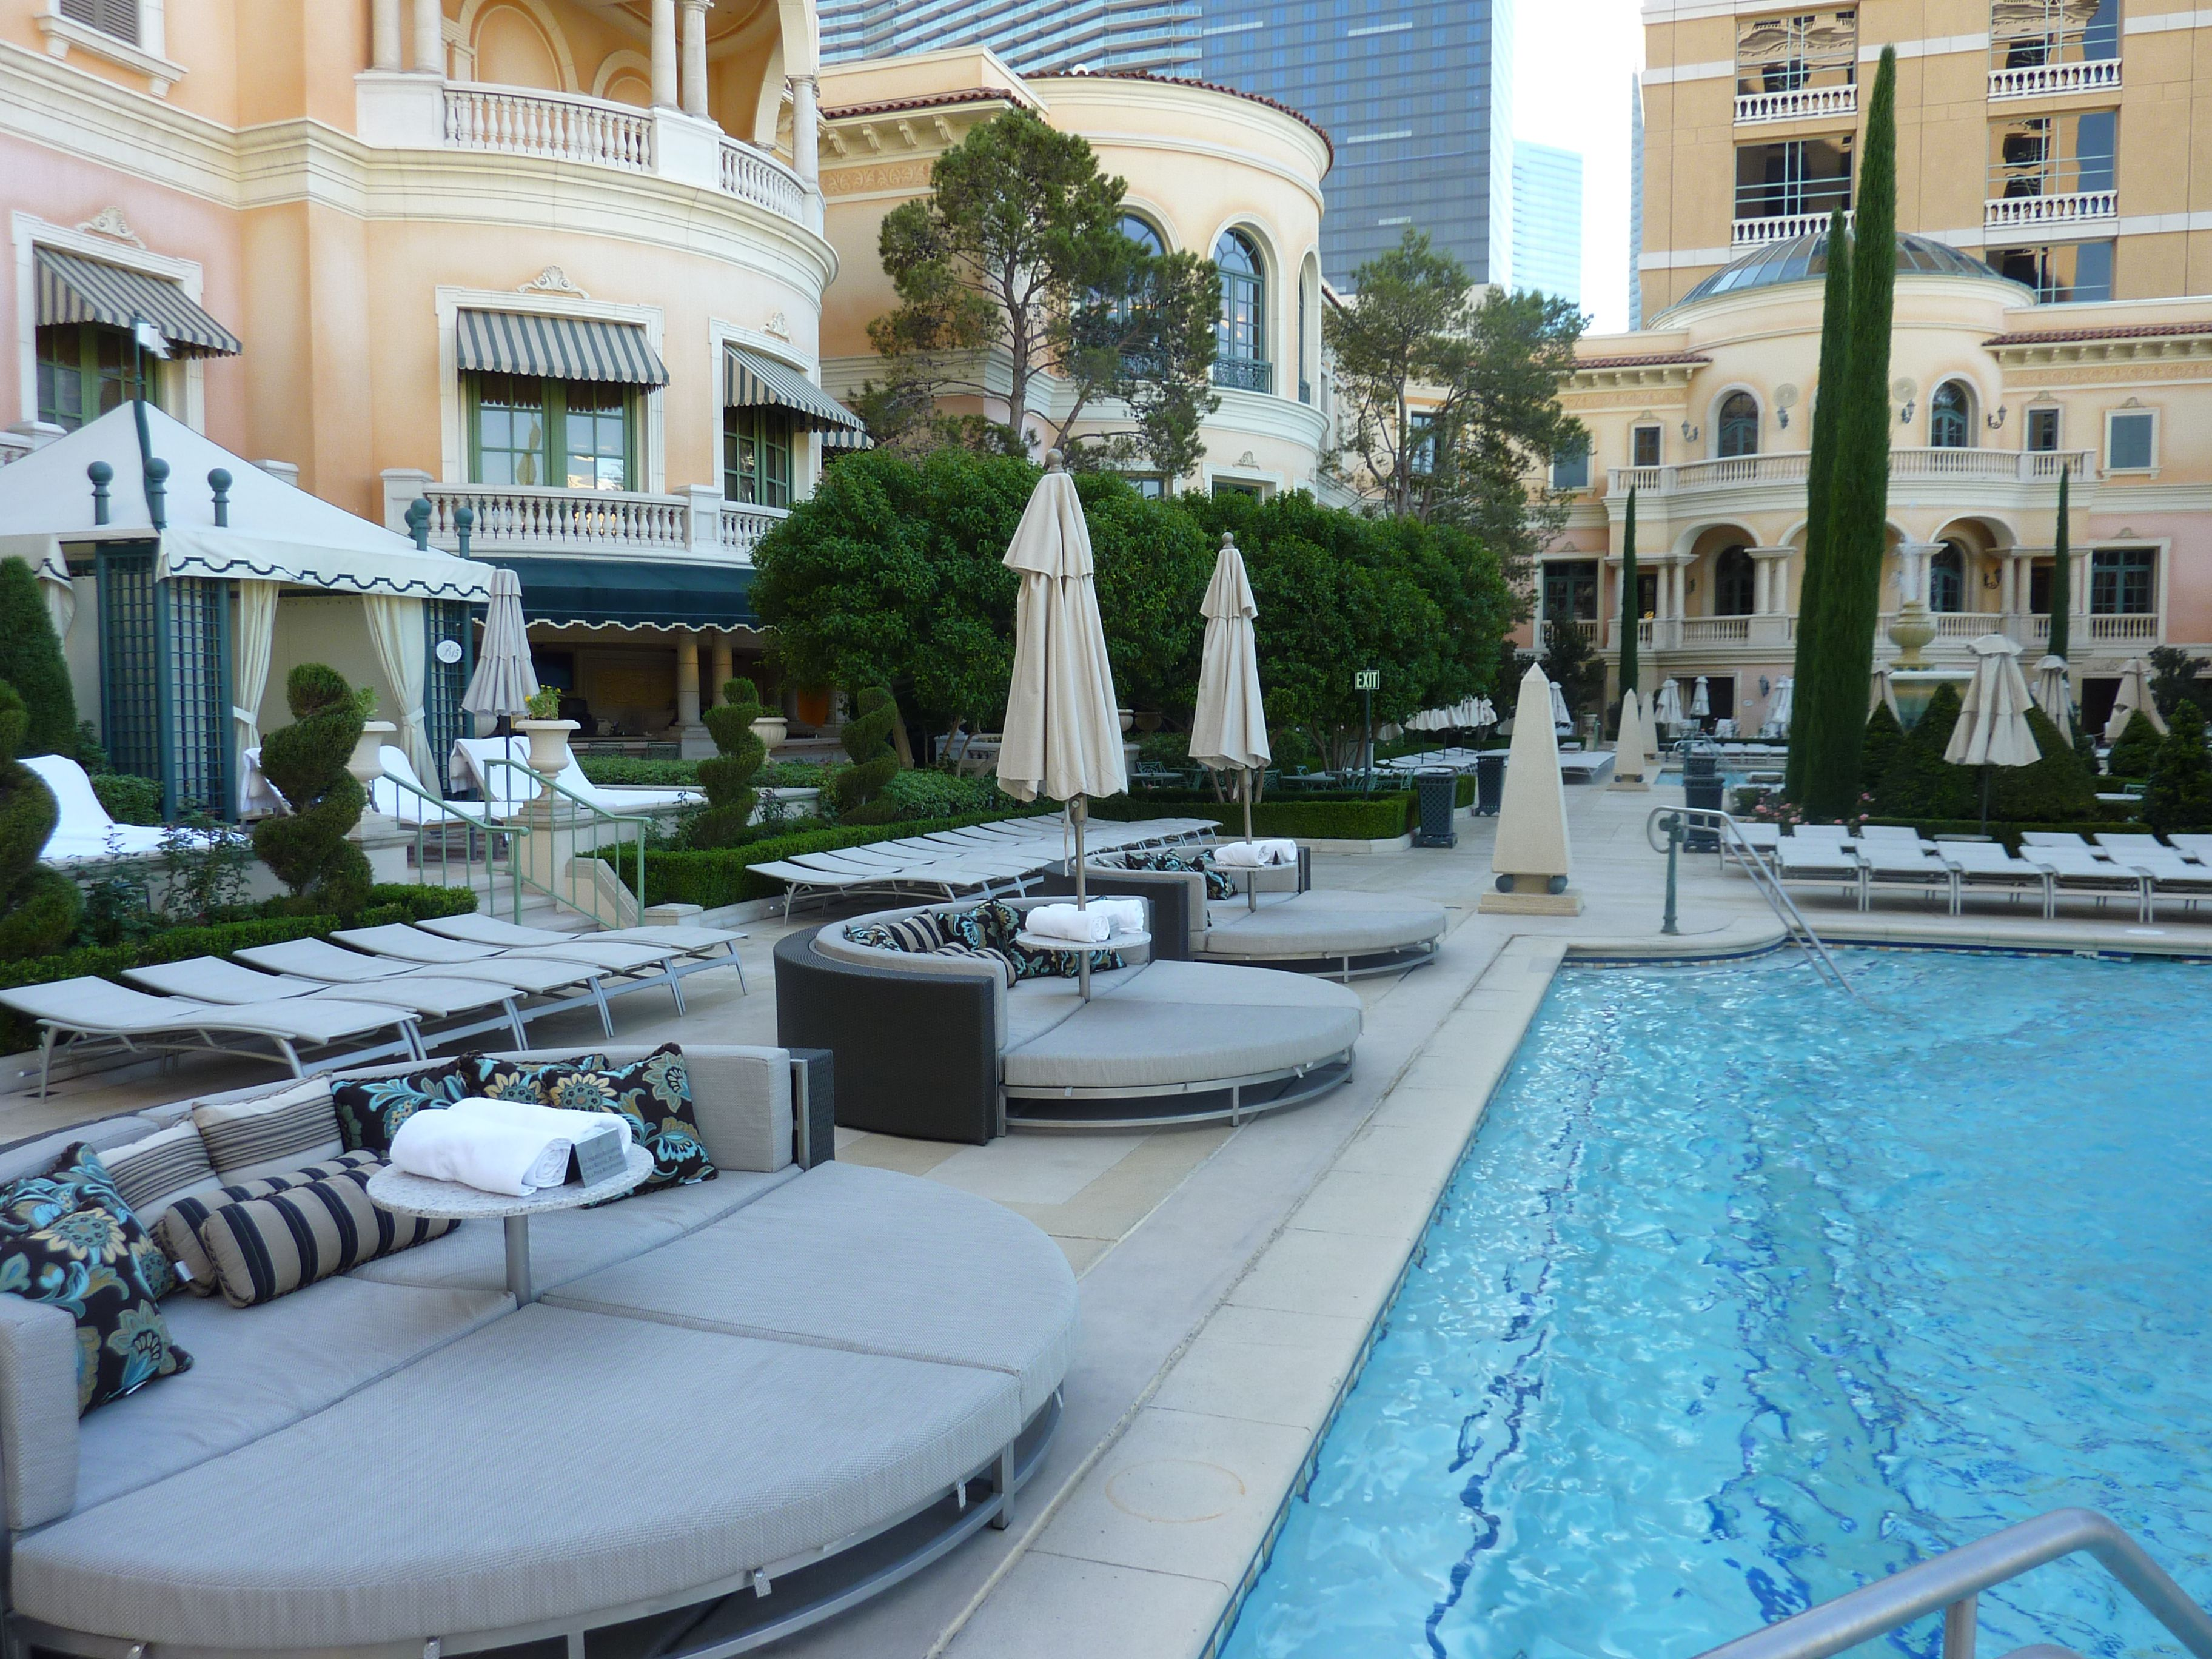 Pictures Of The Pool At Bellagio Las Vegas